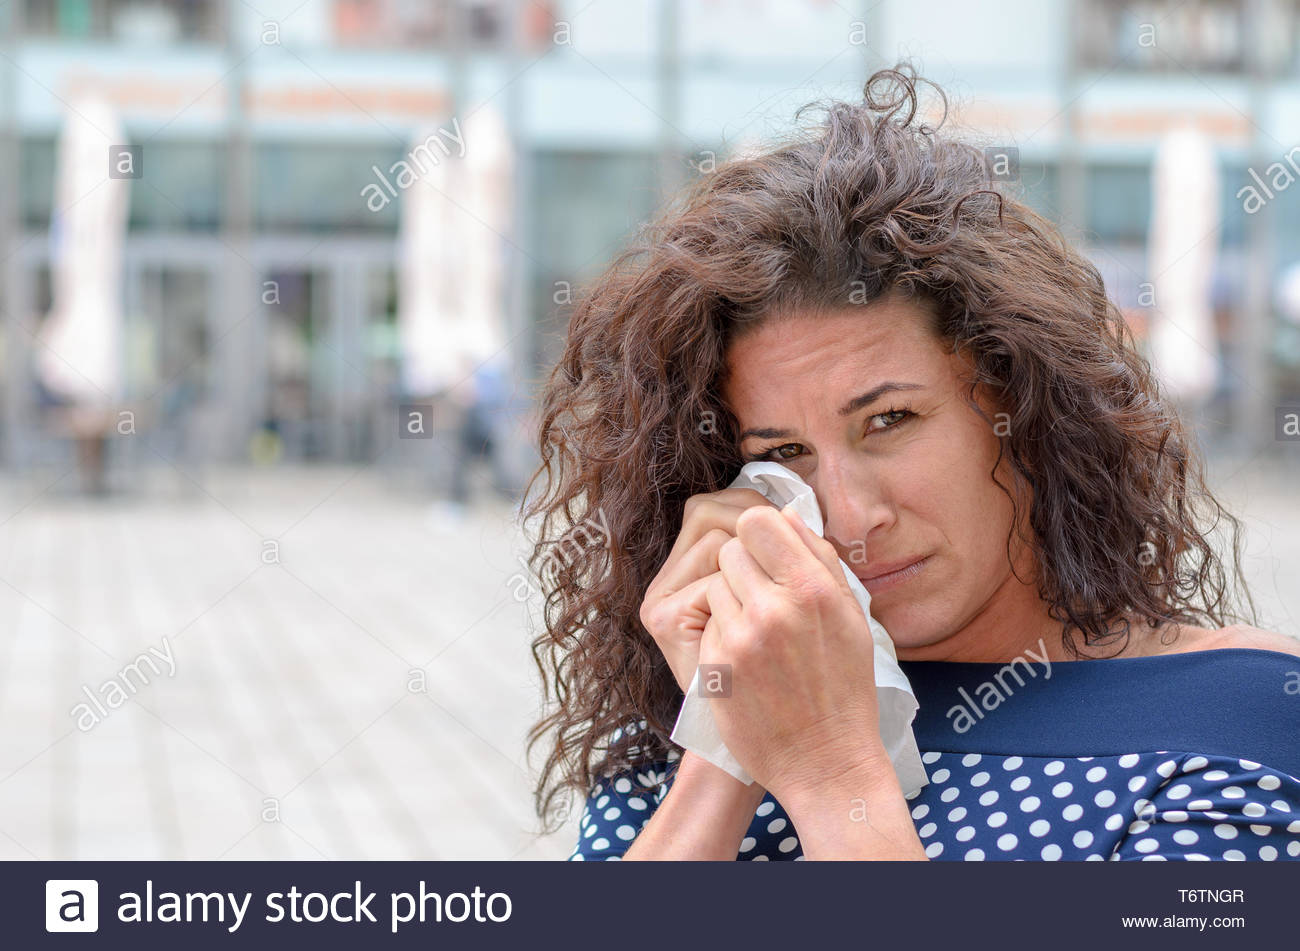 Tearful young woman wiping her eyes - Stock Image